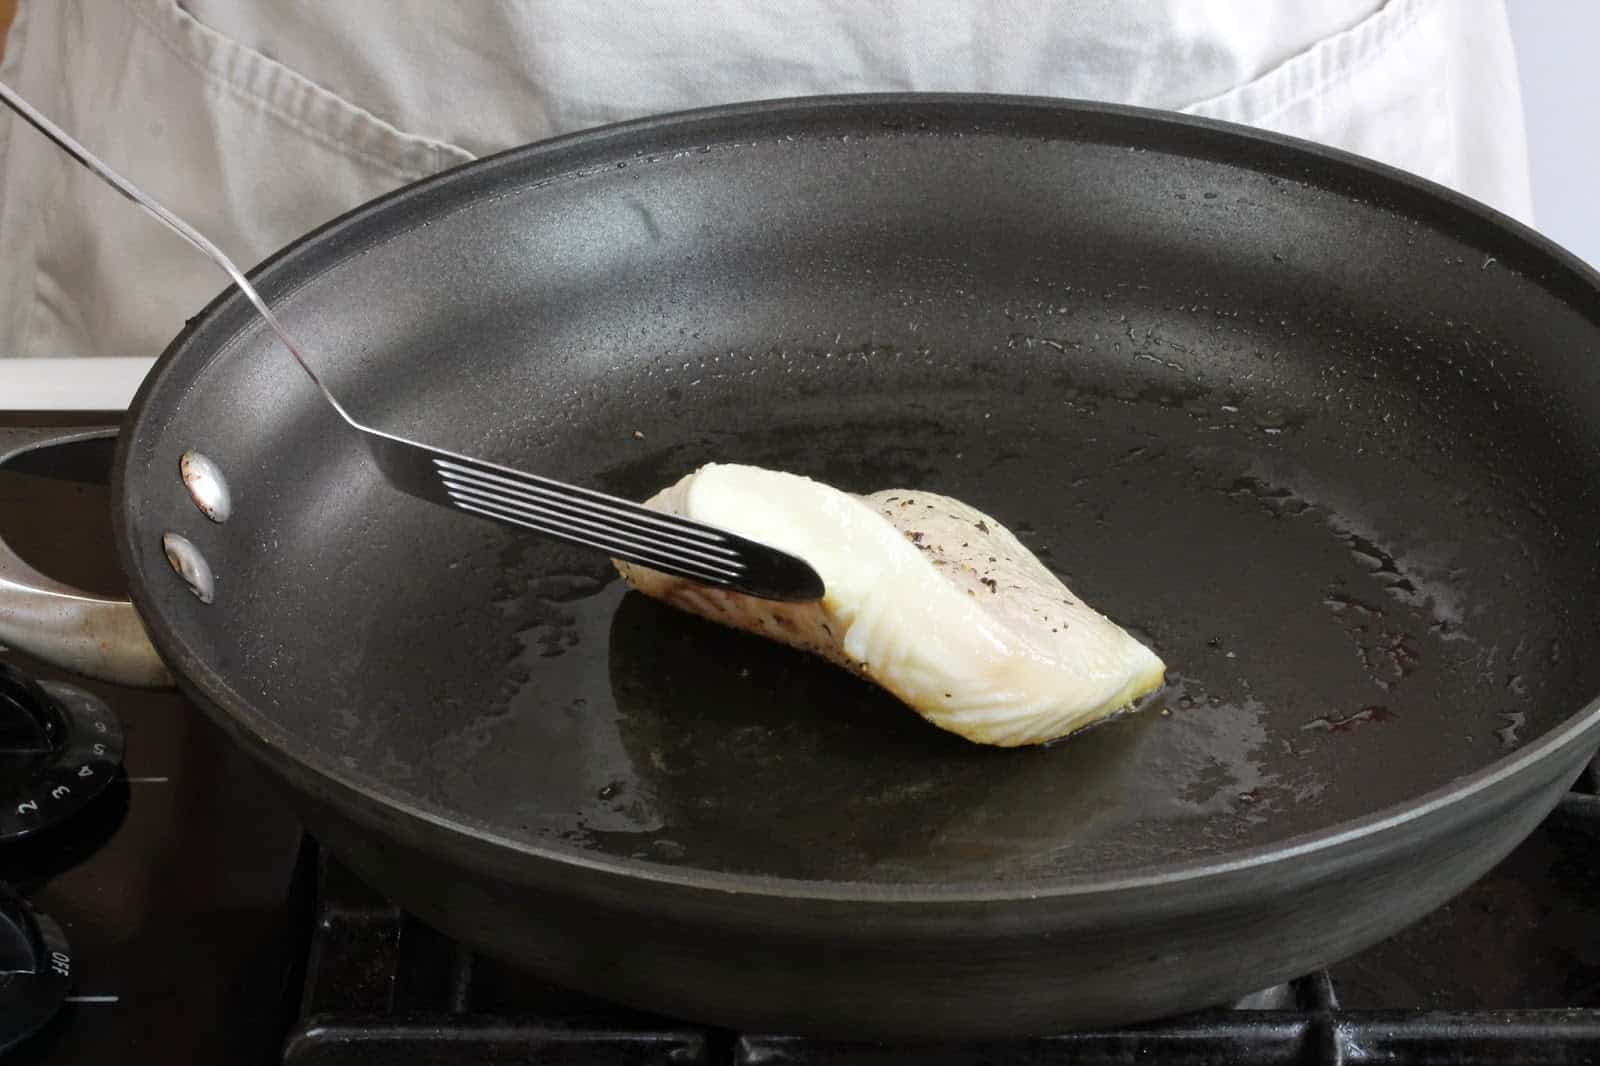 A spatula lifts the filet from the skillet, ready to flip